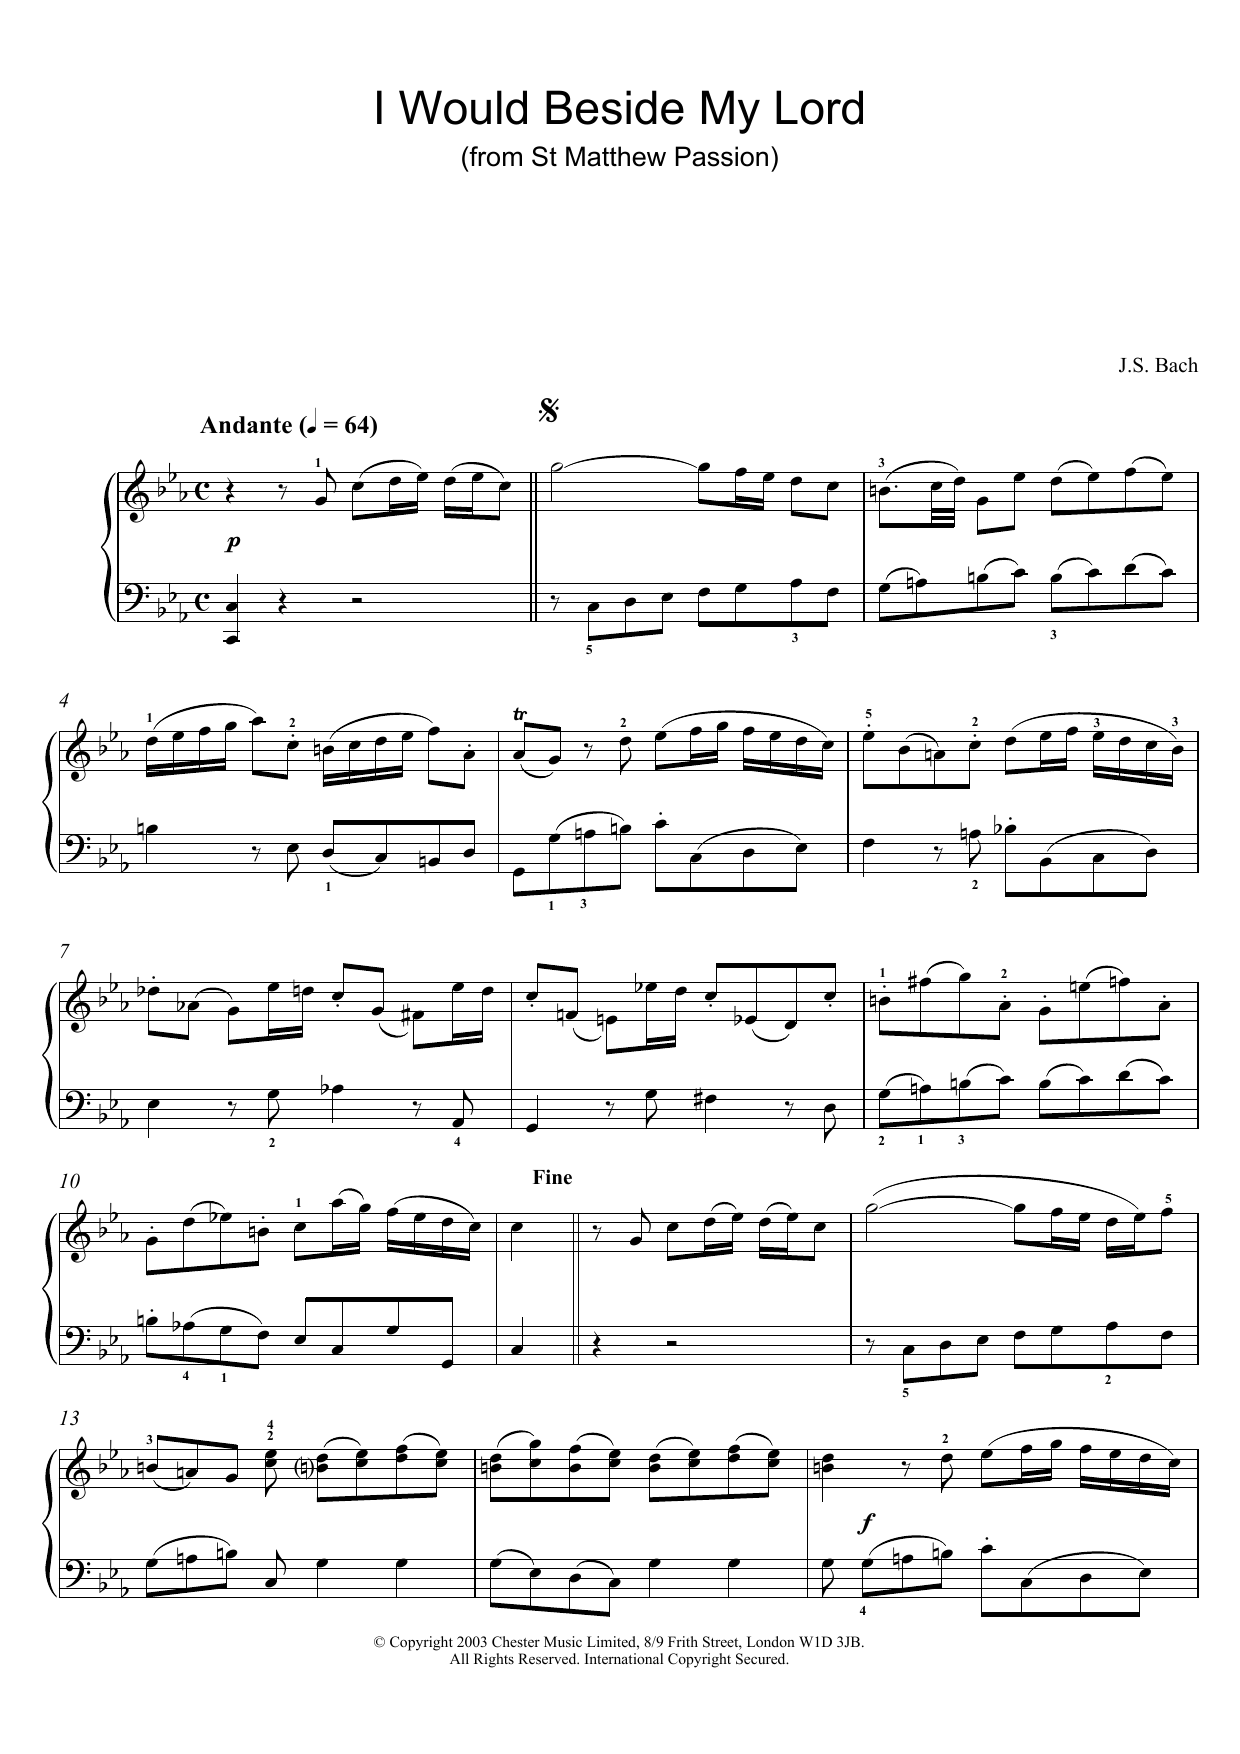 J.S. Bach I Would Beside My Lord (from St Matthew Passion) sheet music preview music notes and score for Piano including 4 page(s)